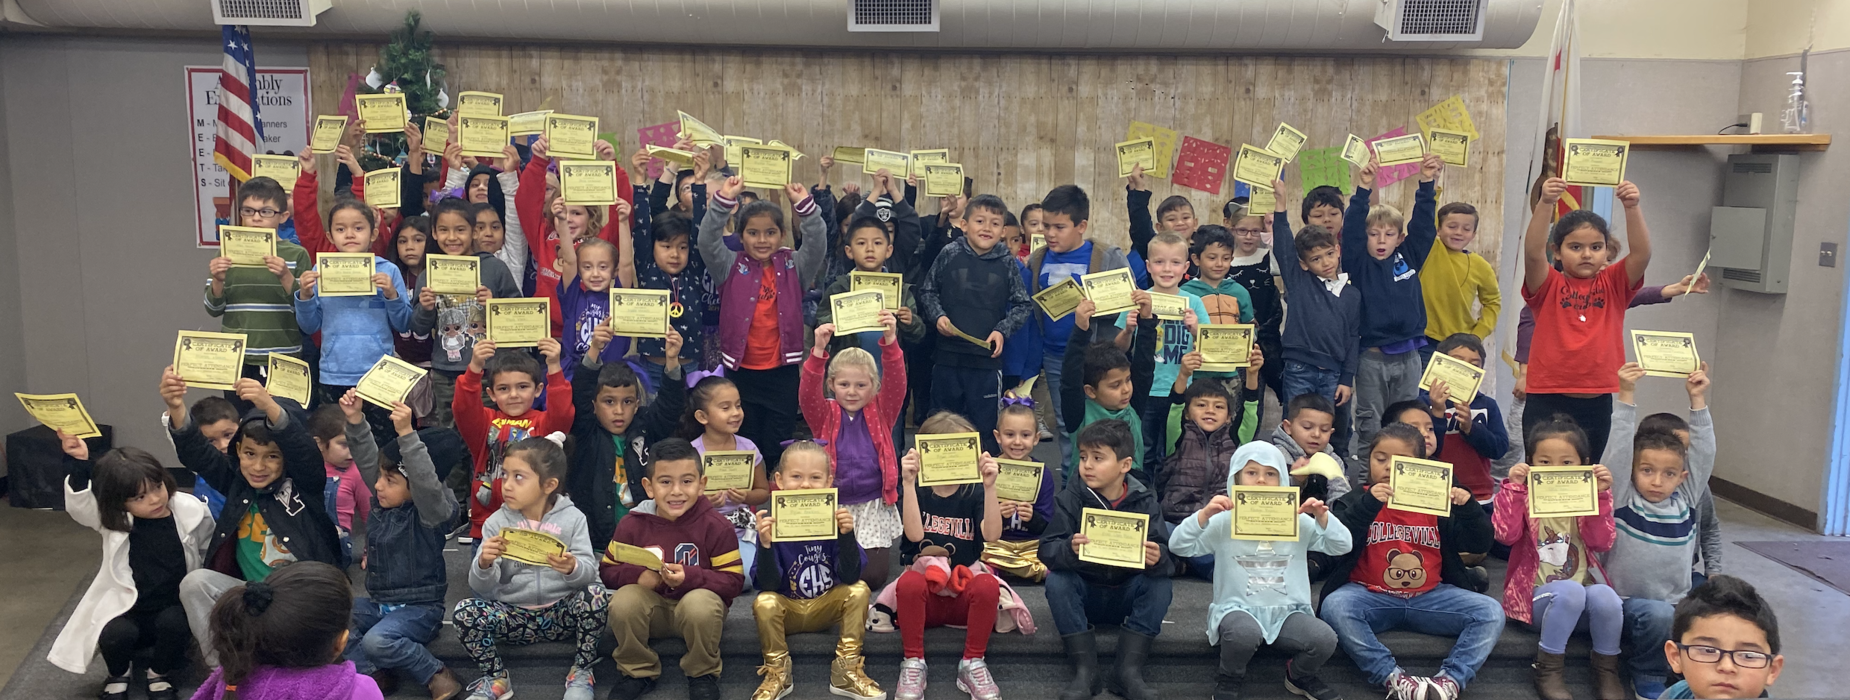 Students celebrate perfect attendance